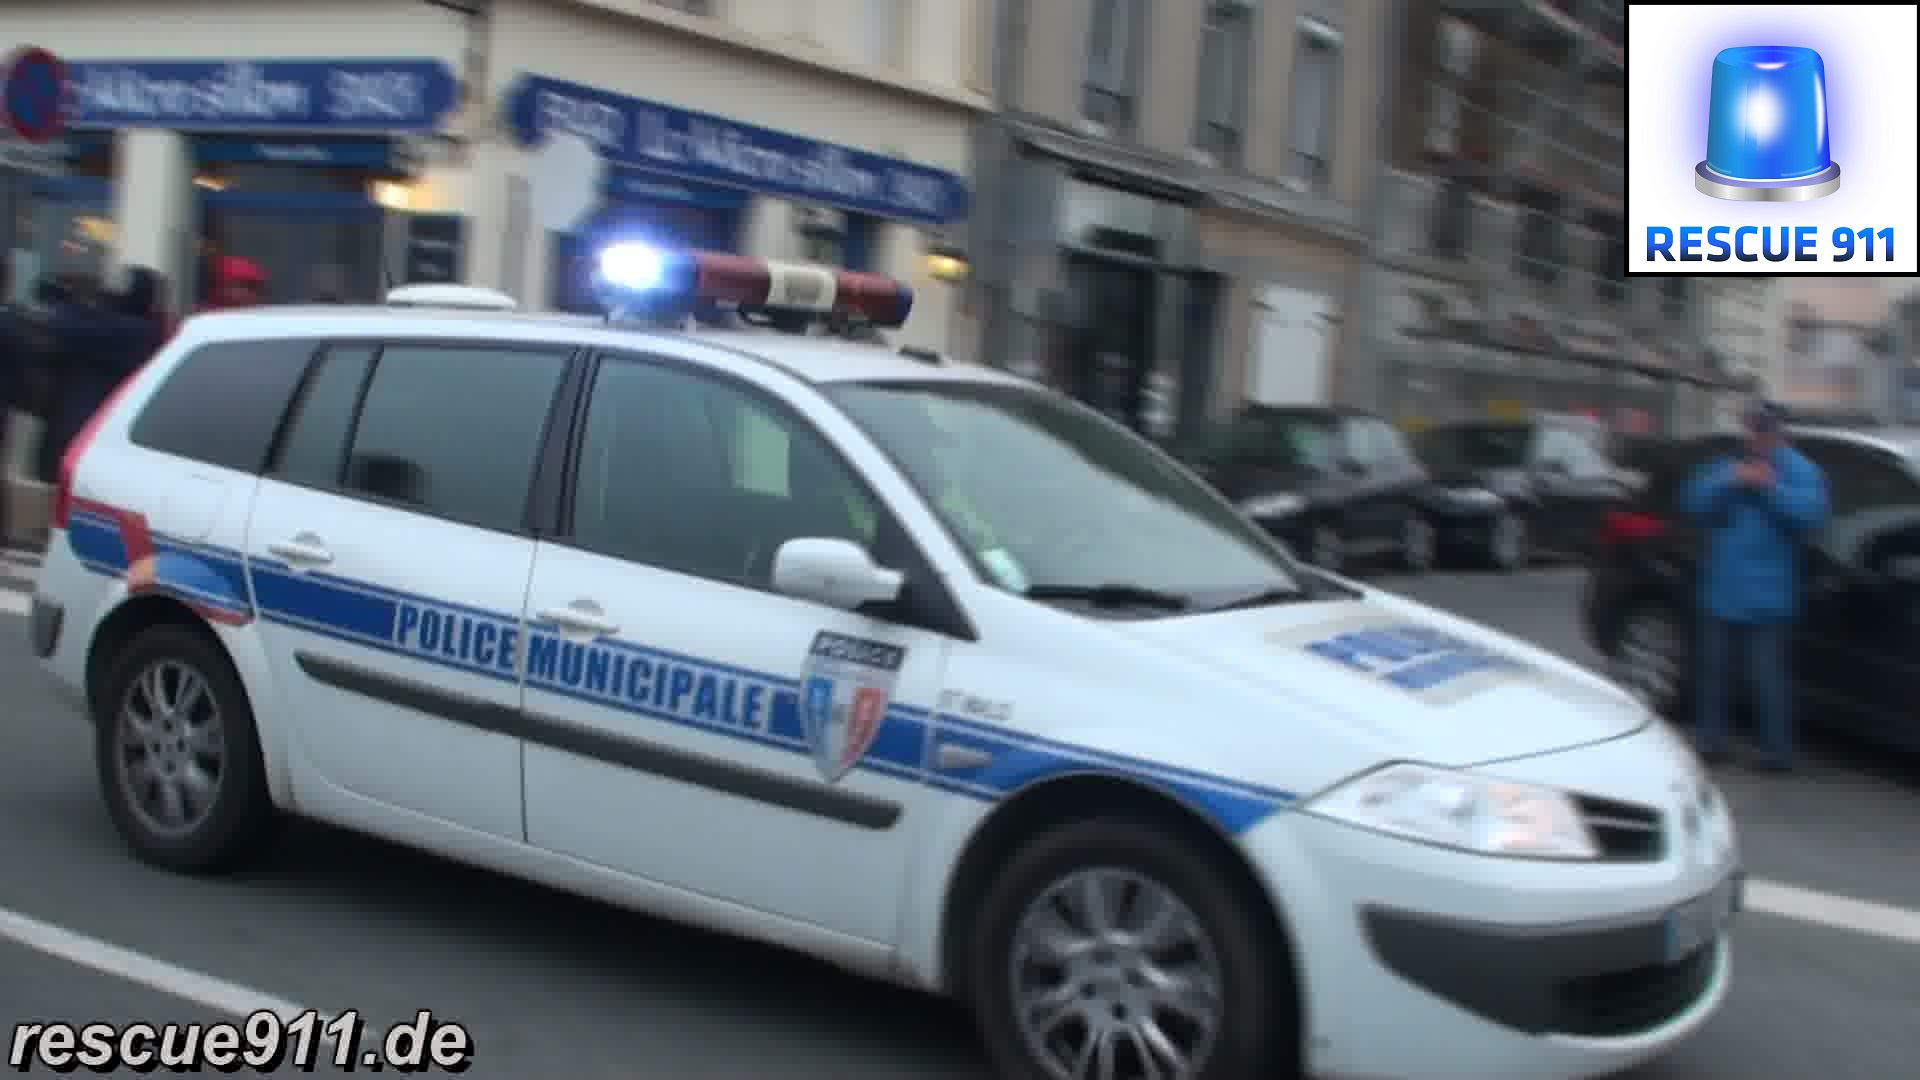 Police Nationale + Police Municipale Saint-Malo (compilation) (stream)